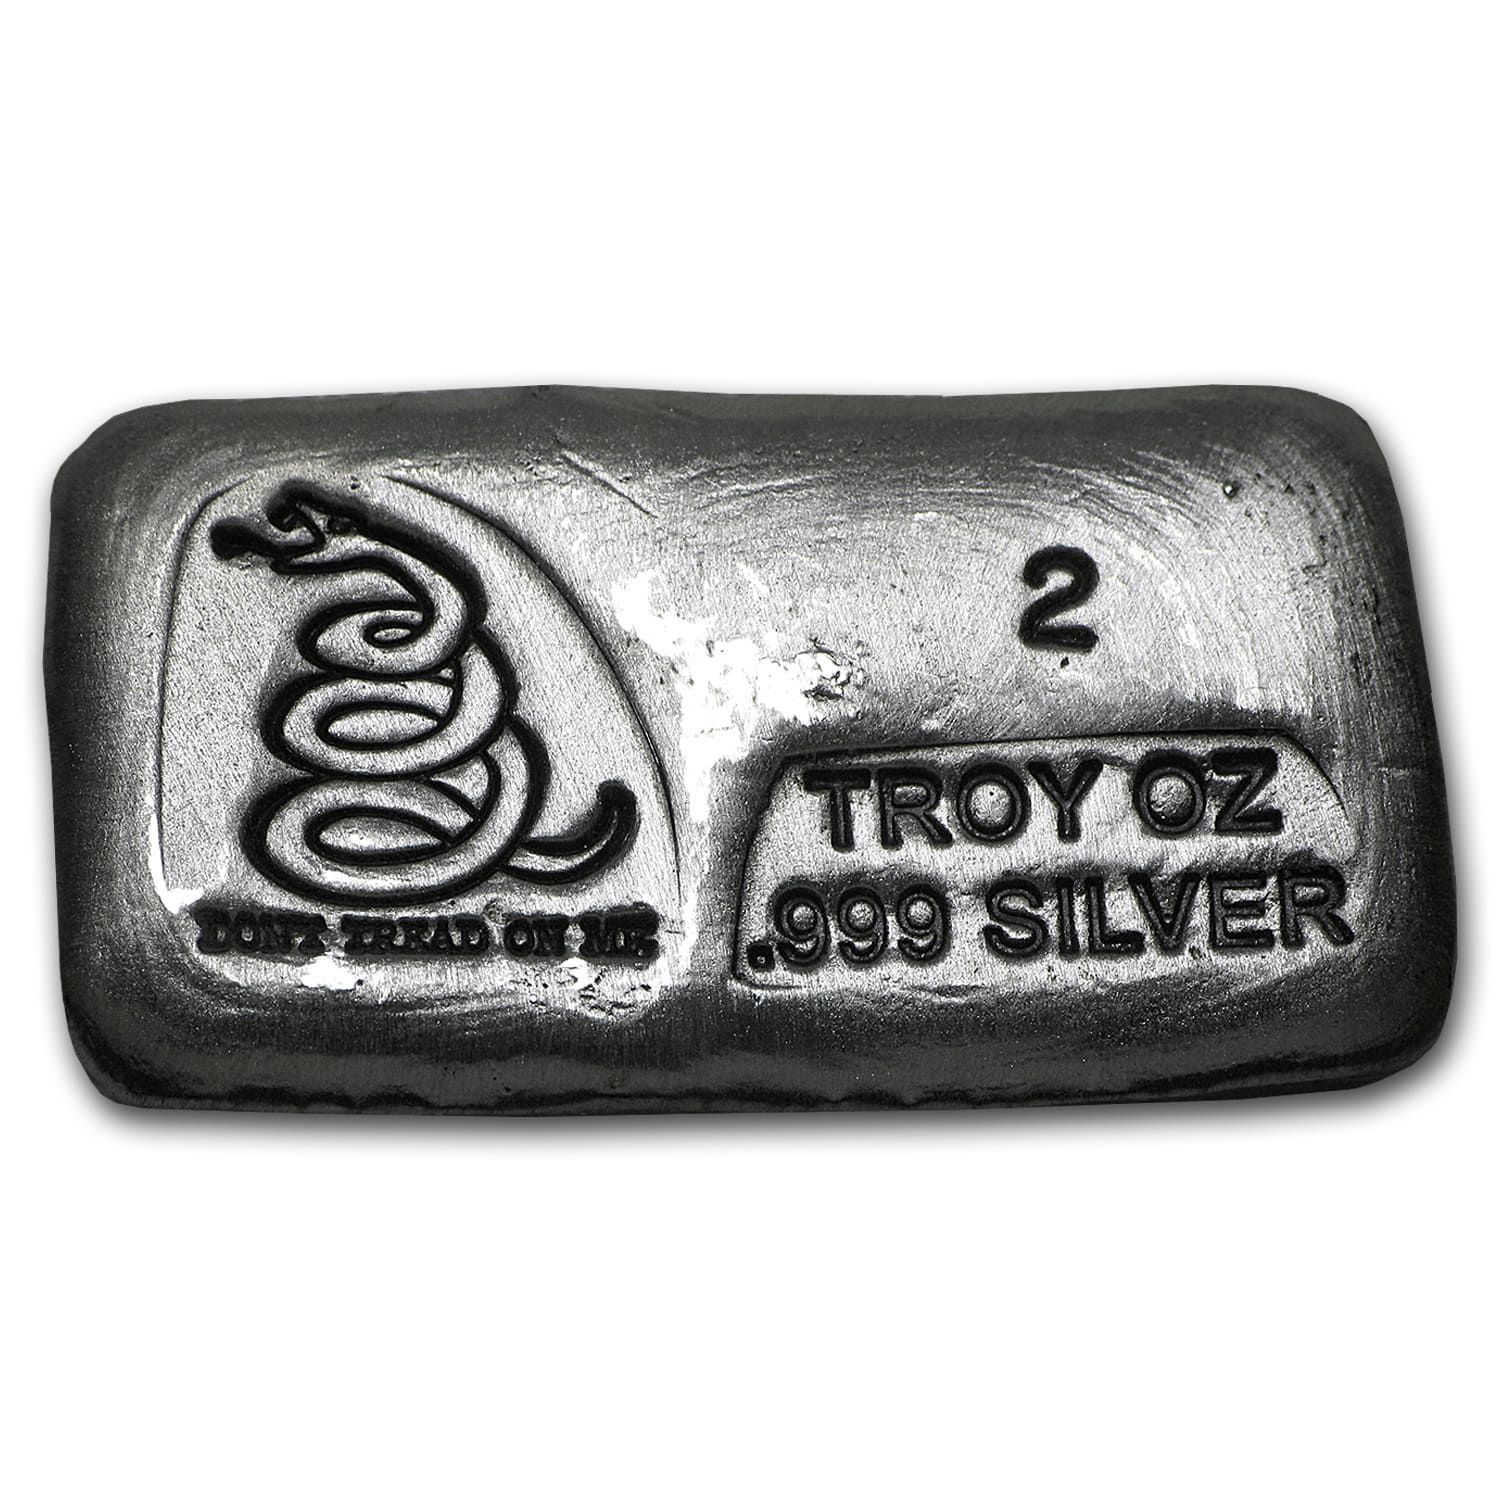 2 oz Silver Bar - Don't Tread On Me (PG&G)